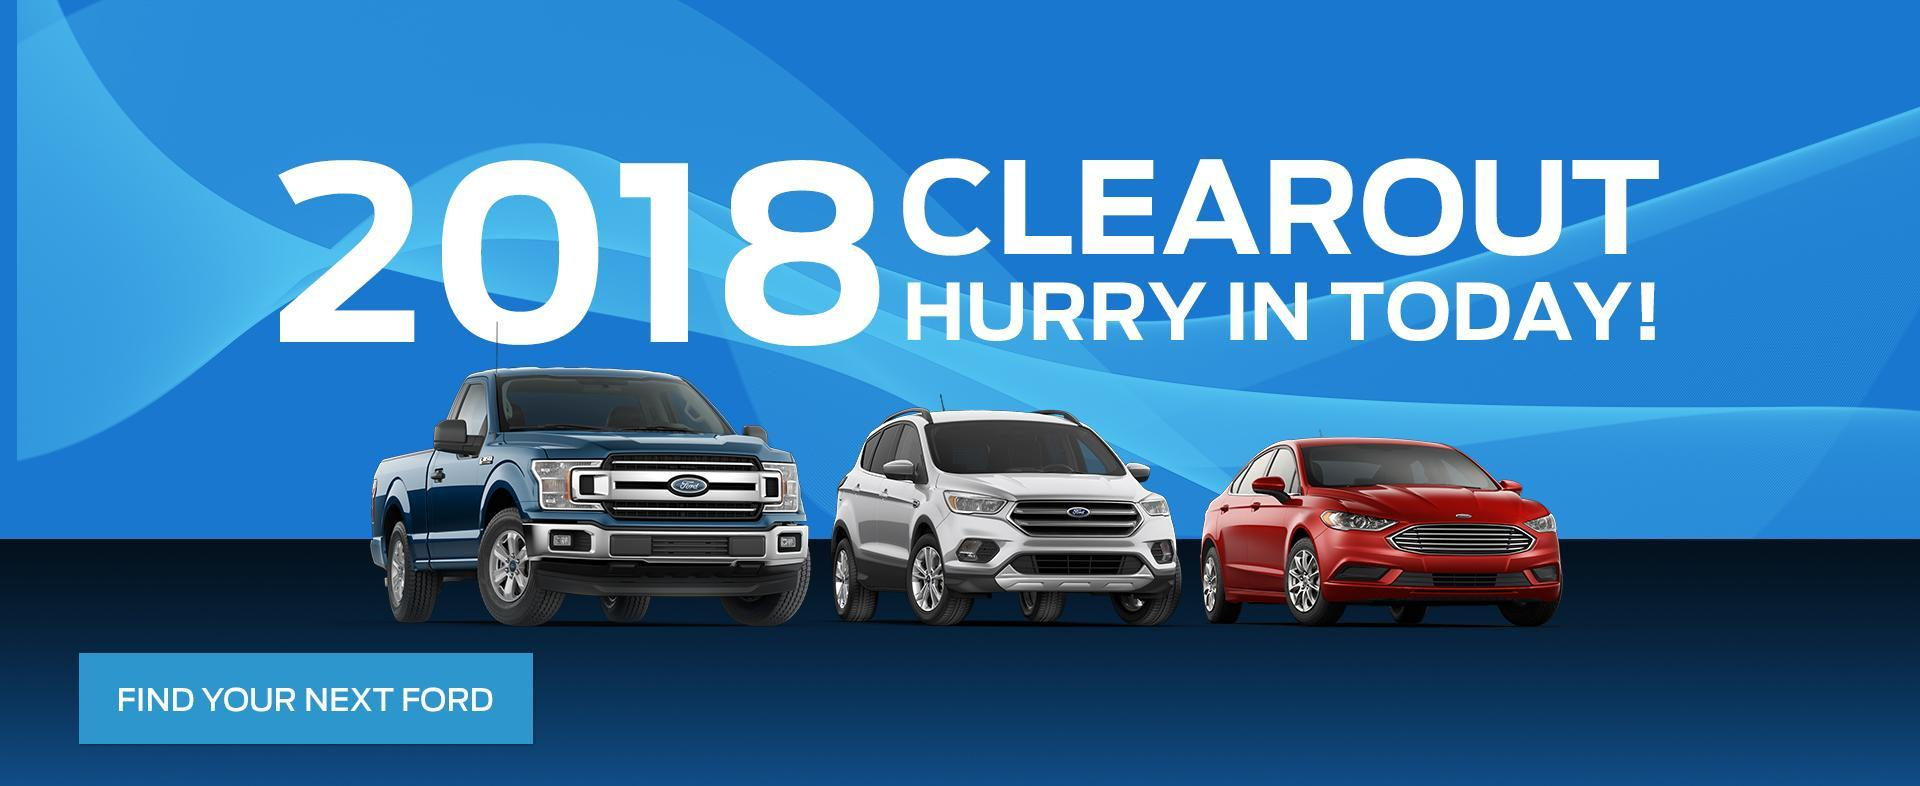 Ford Home 2018 Clearout image